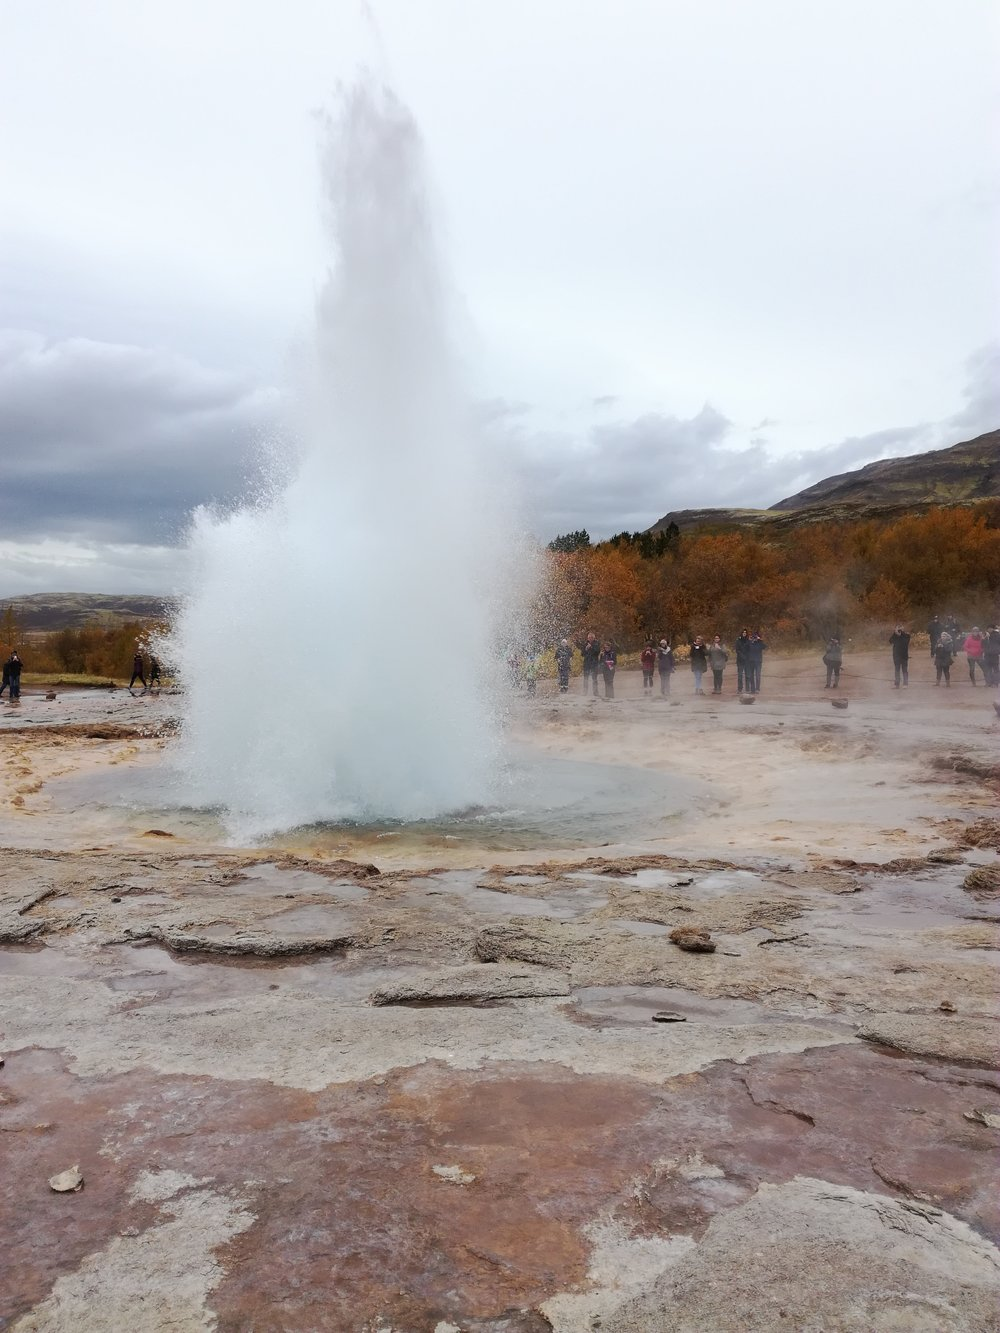 Strokkur Geyser at Haukadalur geothermal area